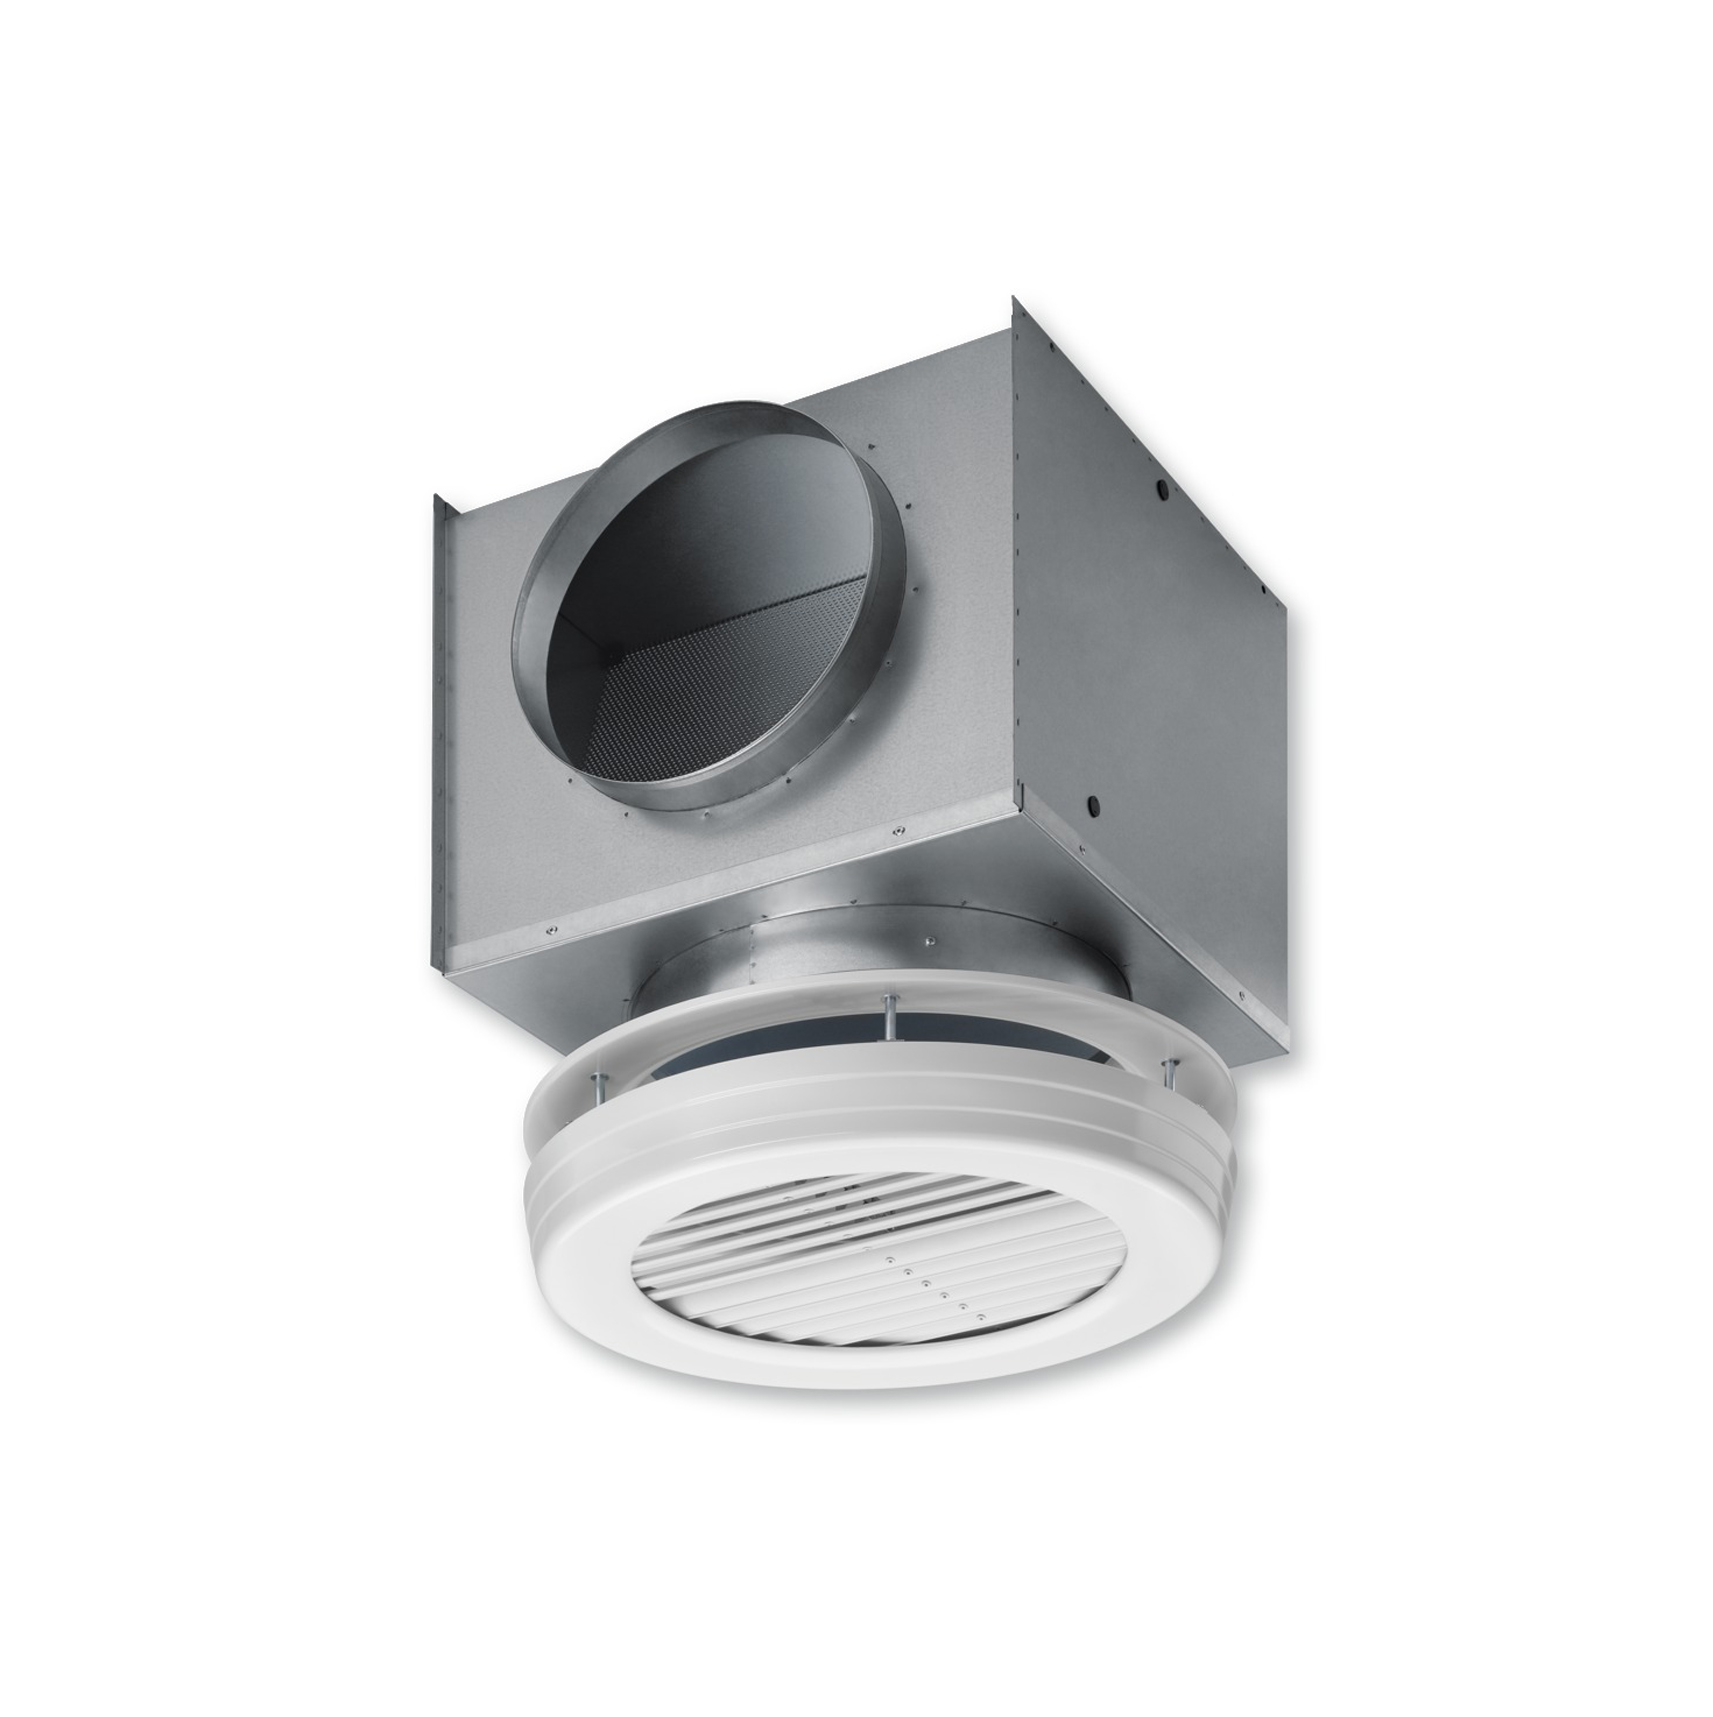 Trox Ceiling Diffuser Type Vdr Quality Air Equipment